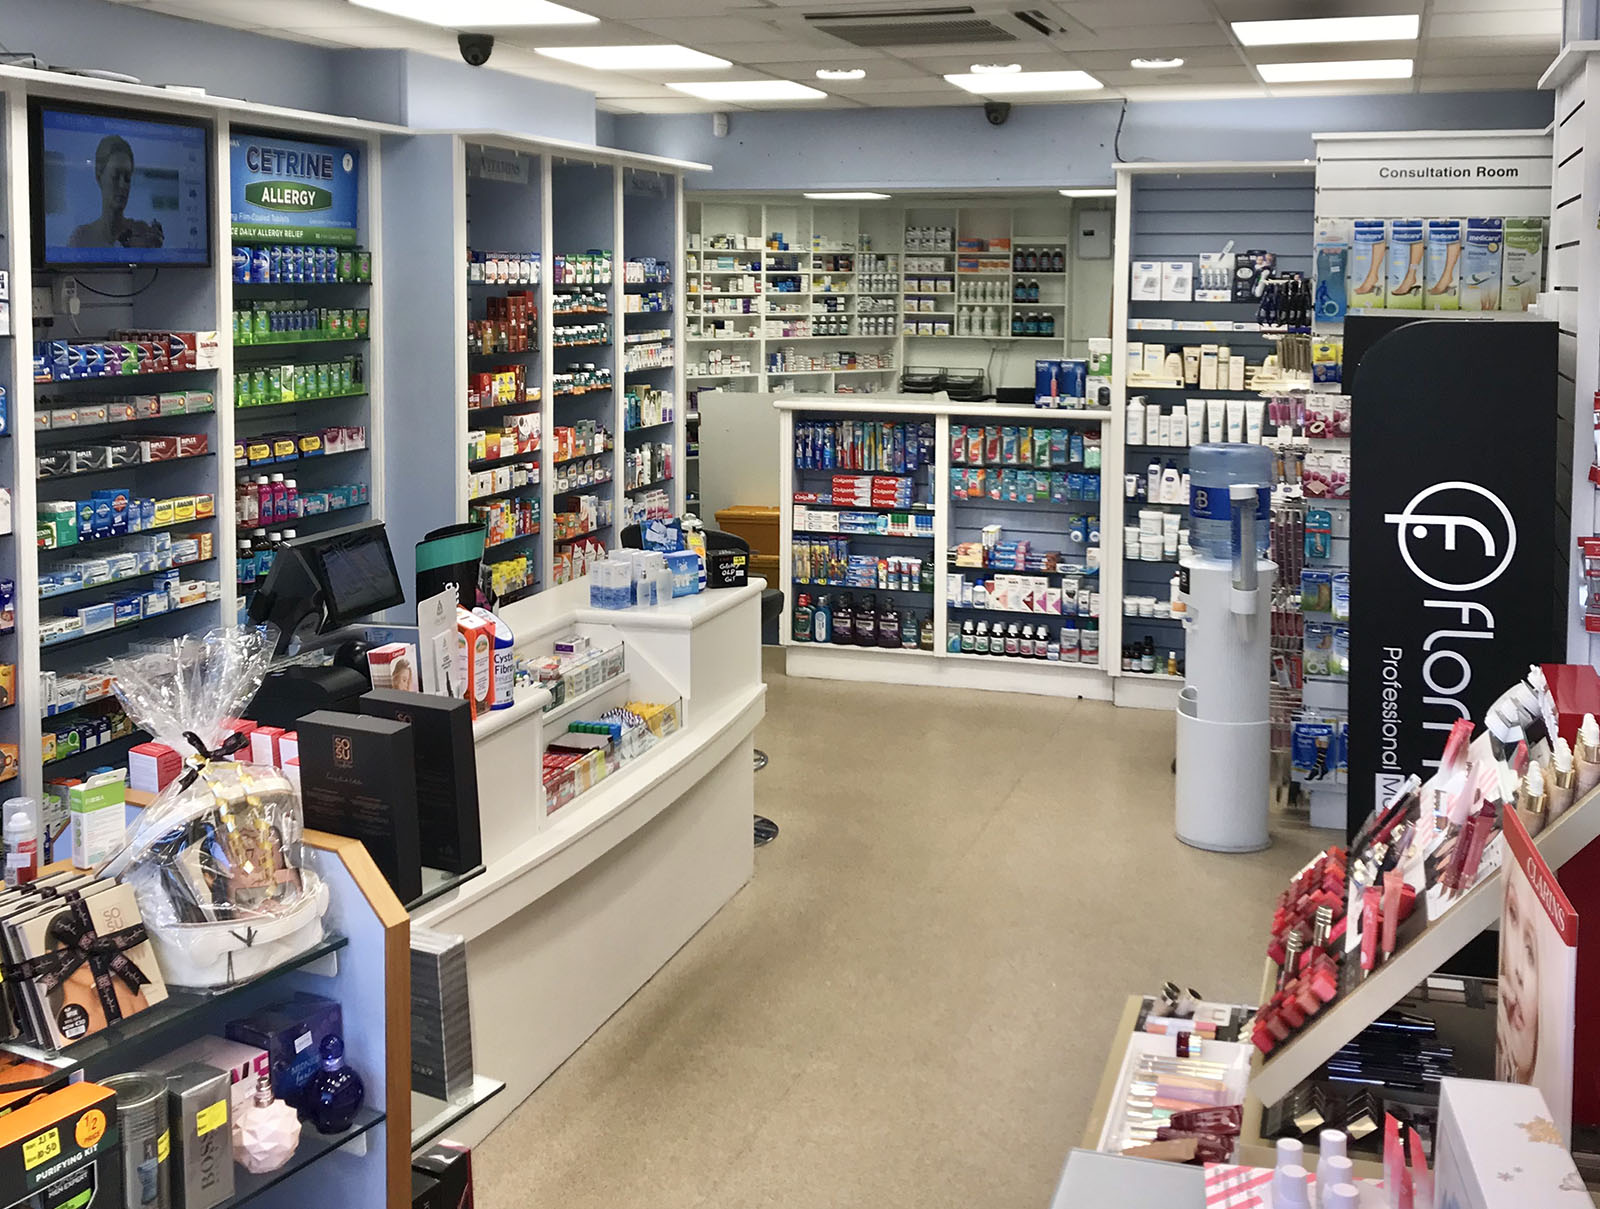 Inside the pharmacy